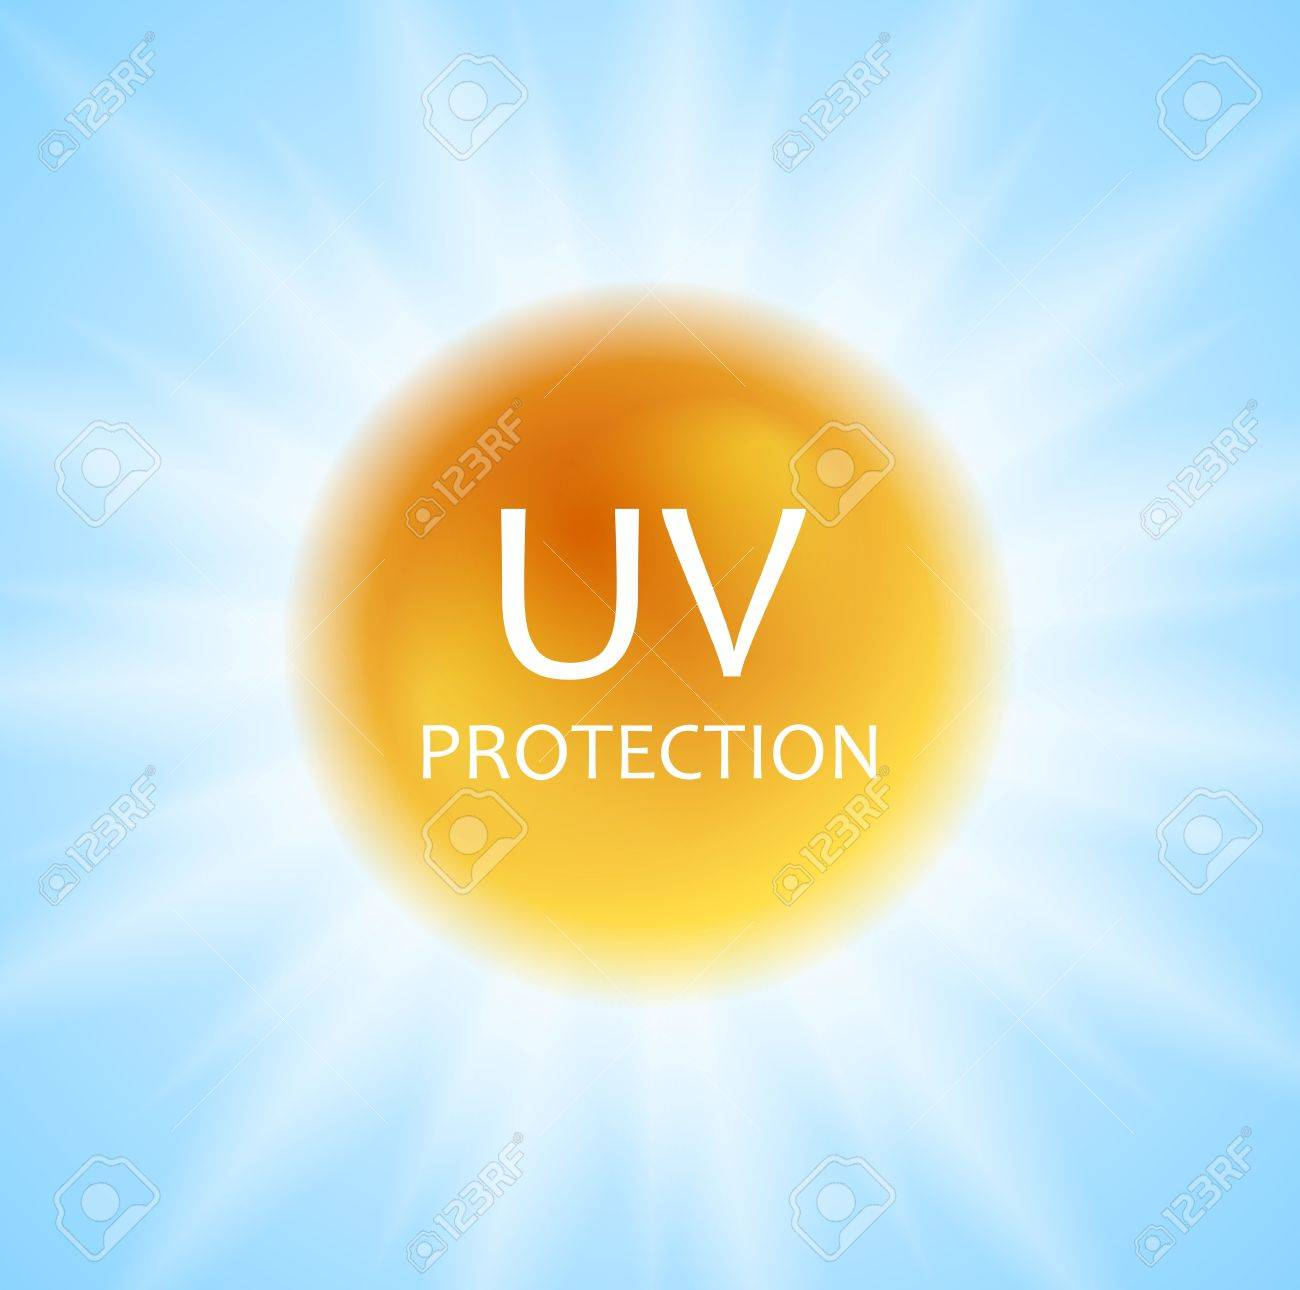 UV protection concept design with shiny sun and sunlight. Vector background - 60694166